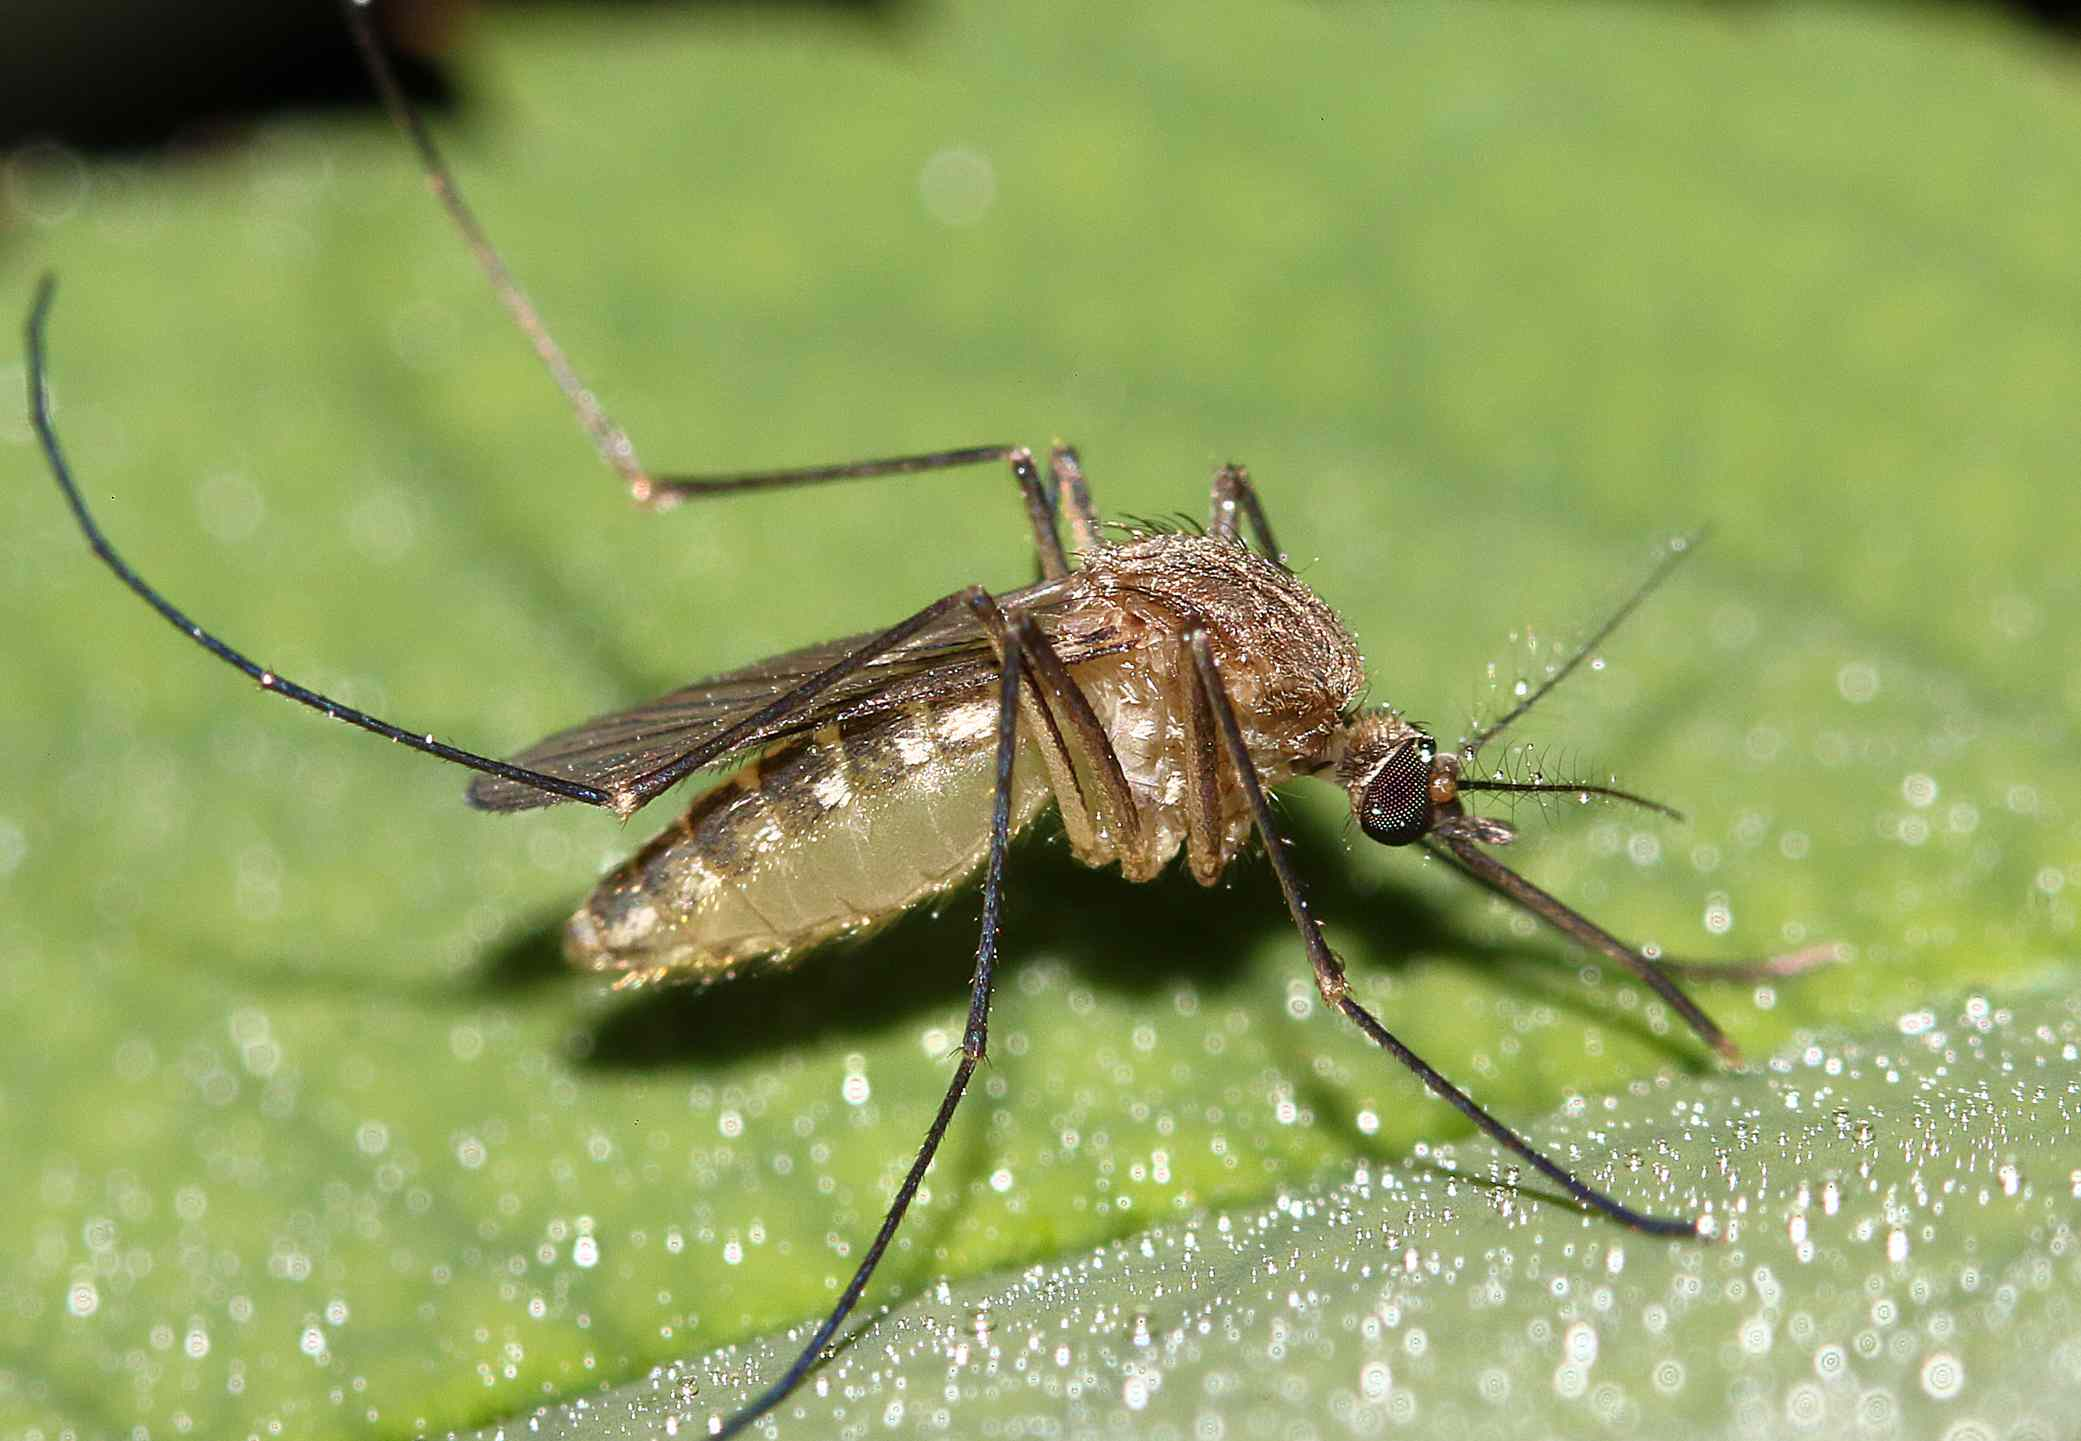 Mosquito Aedes Aegypti on a leaf in Brazil